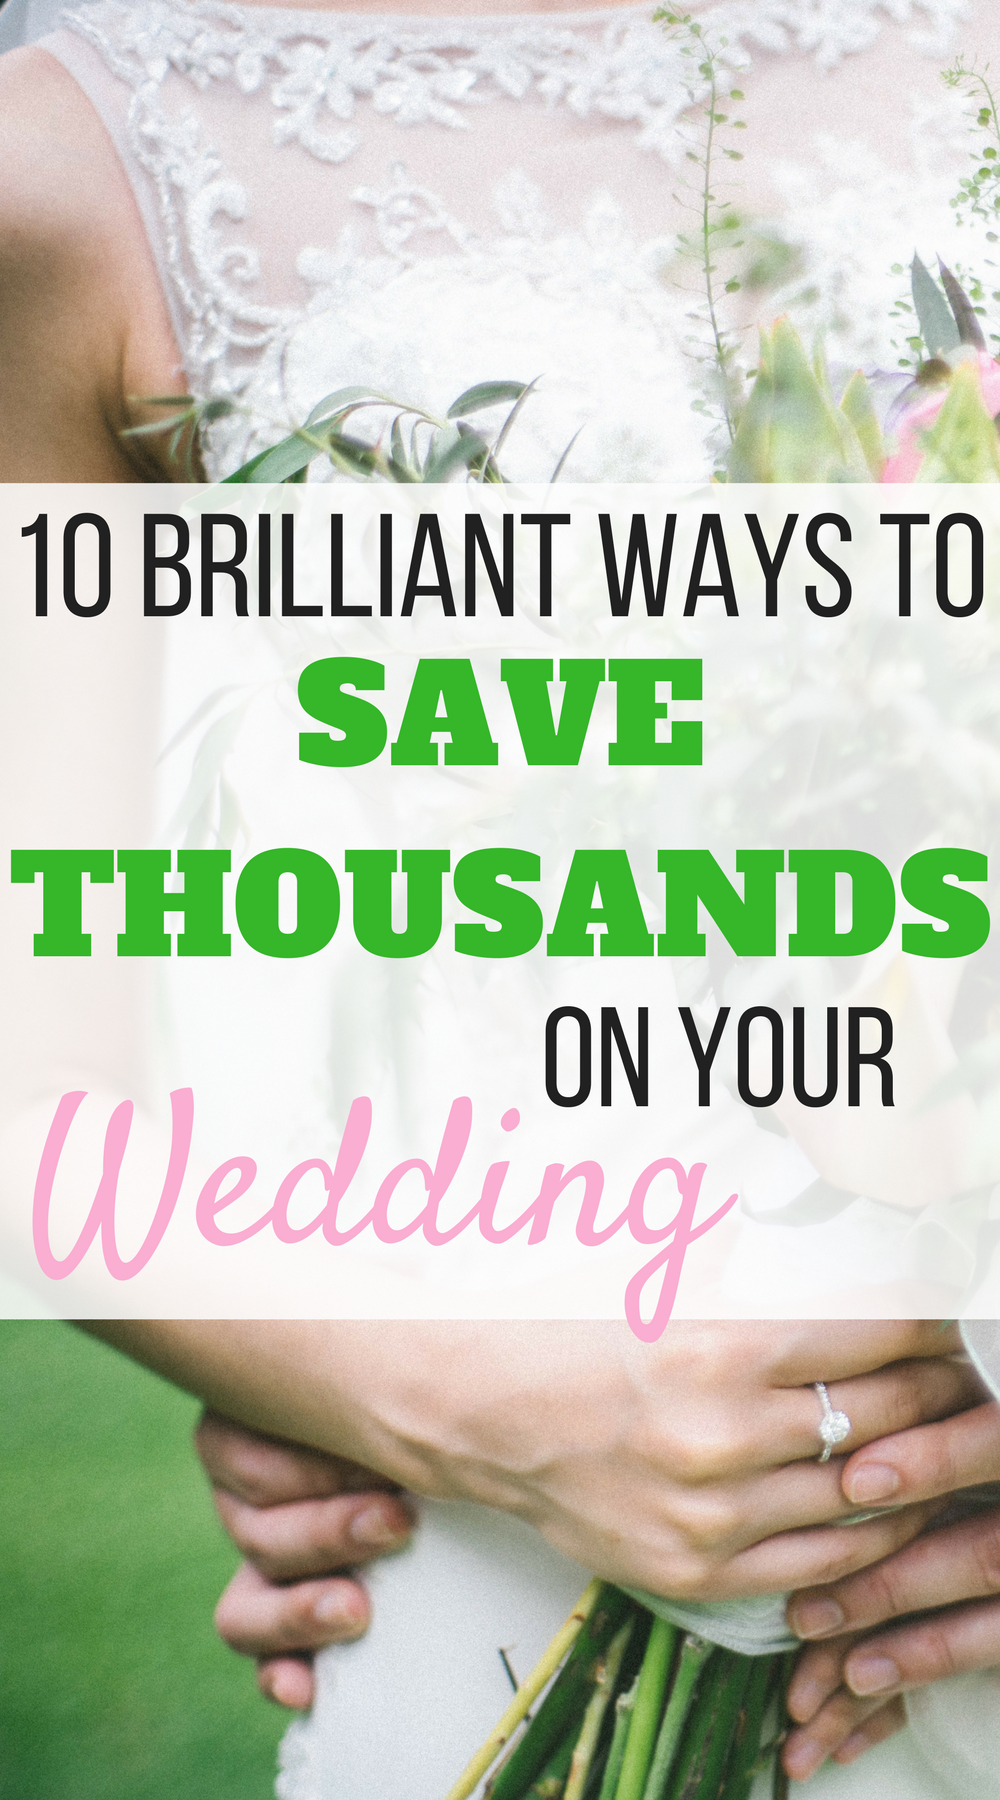 How to Plan an Affordable Wedding 10 Insanely Smart Ideas